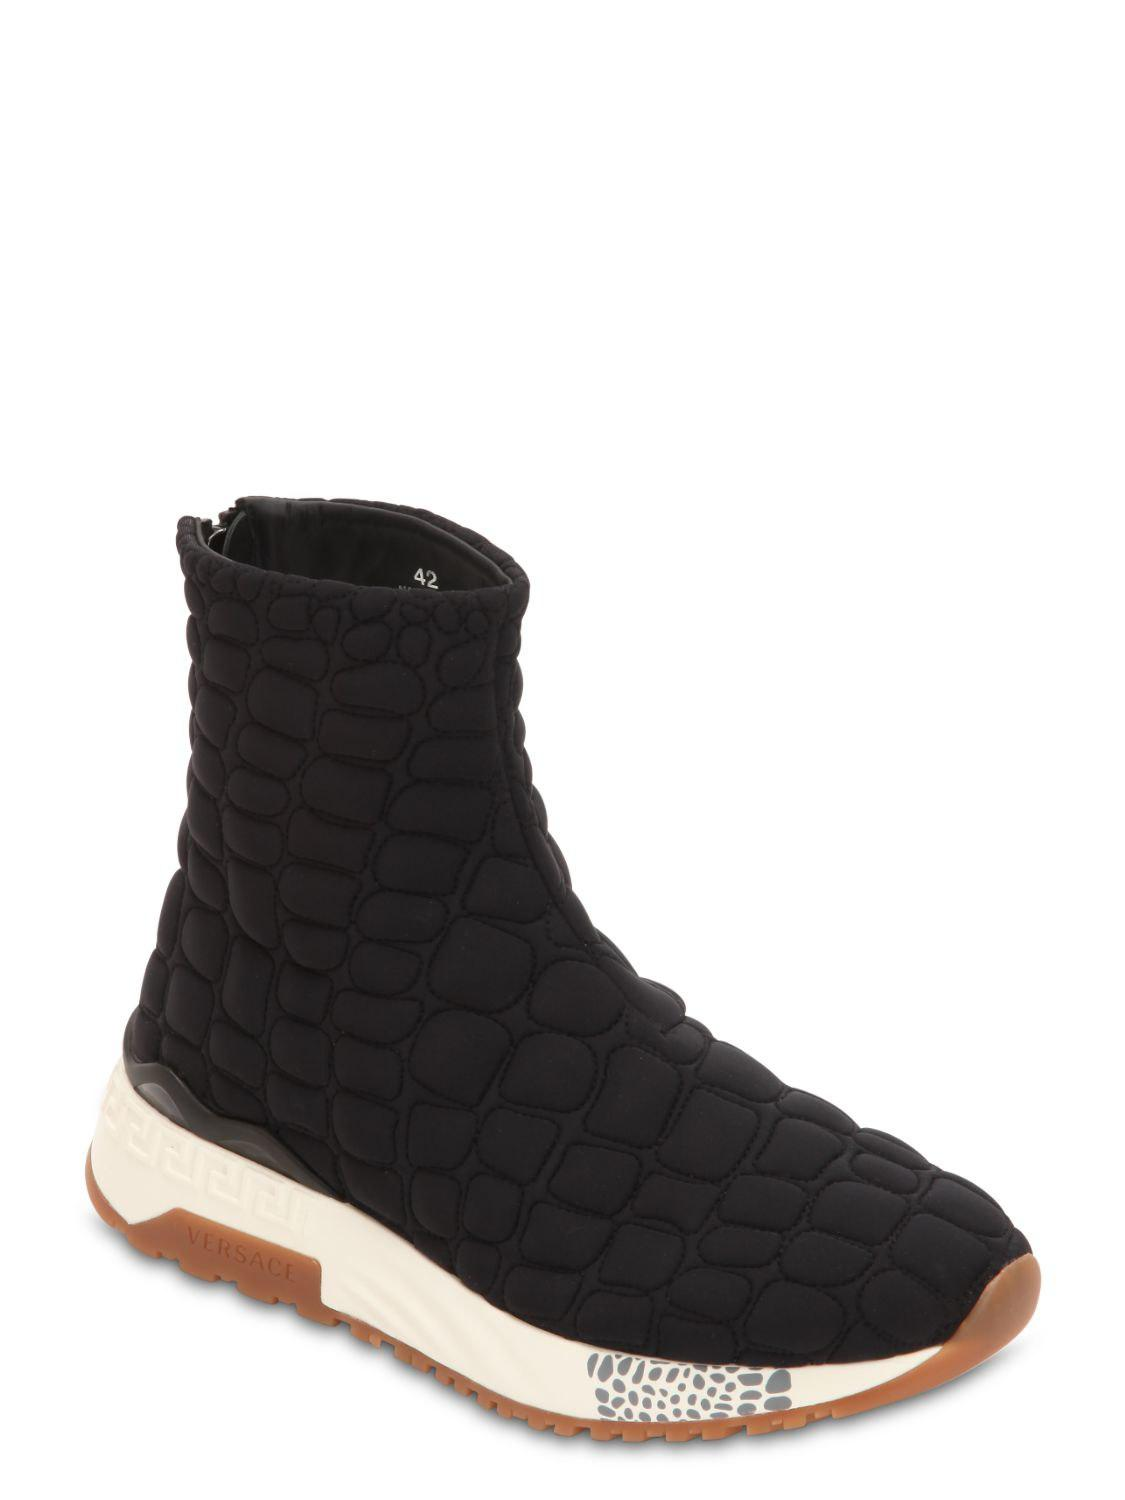 VERSACE QUILTED NYLON PADDED SOCK SNEAKERS Th3dWDmW